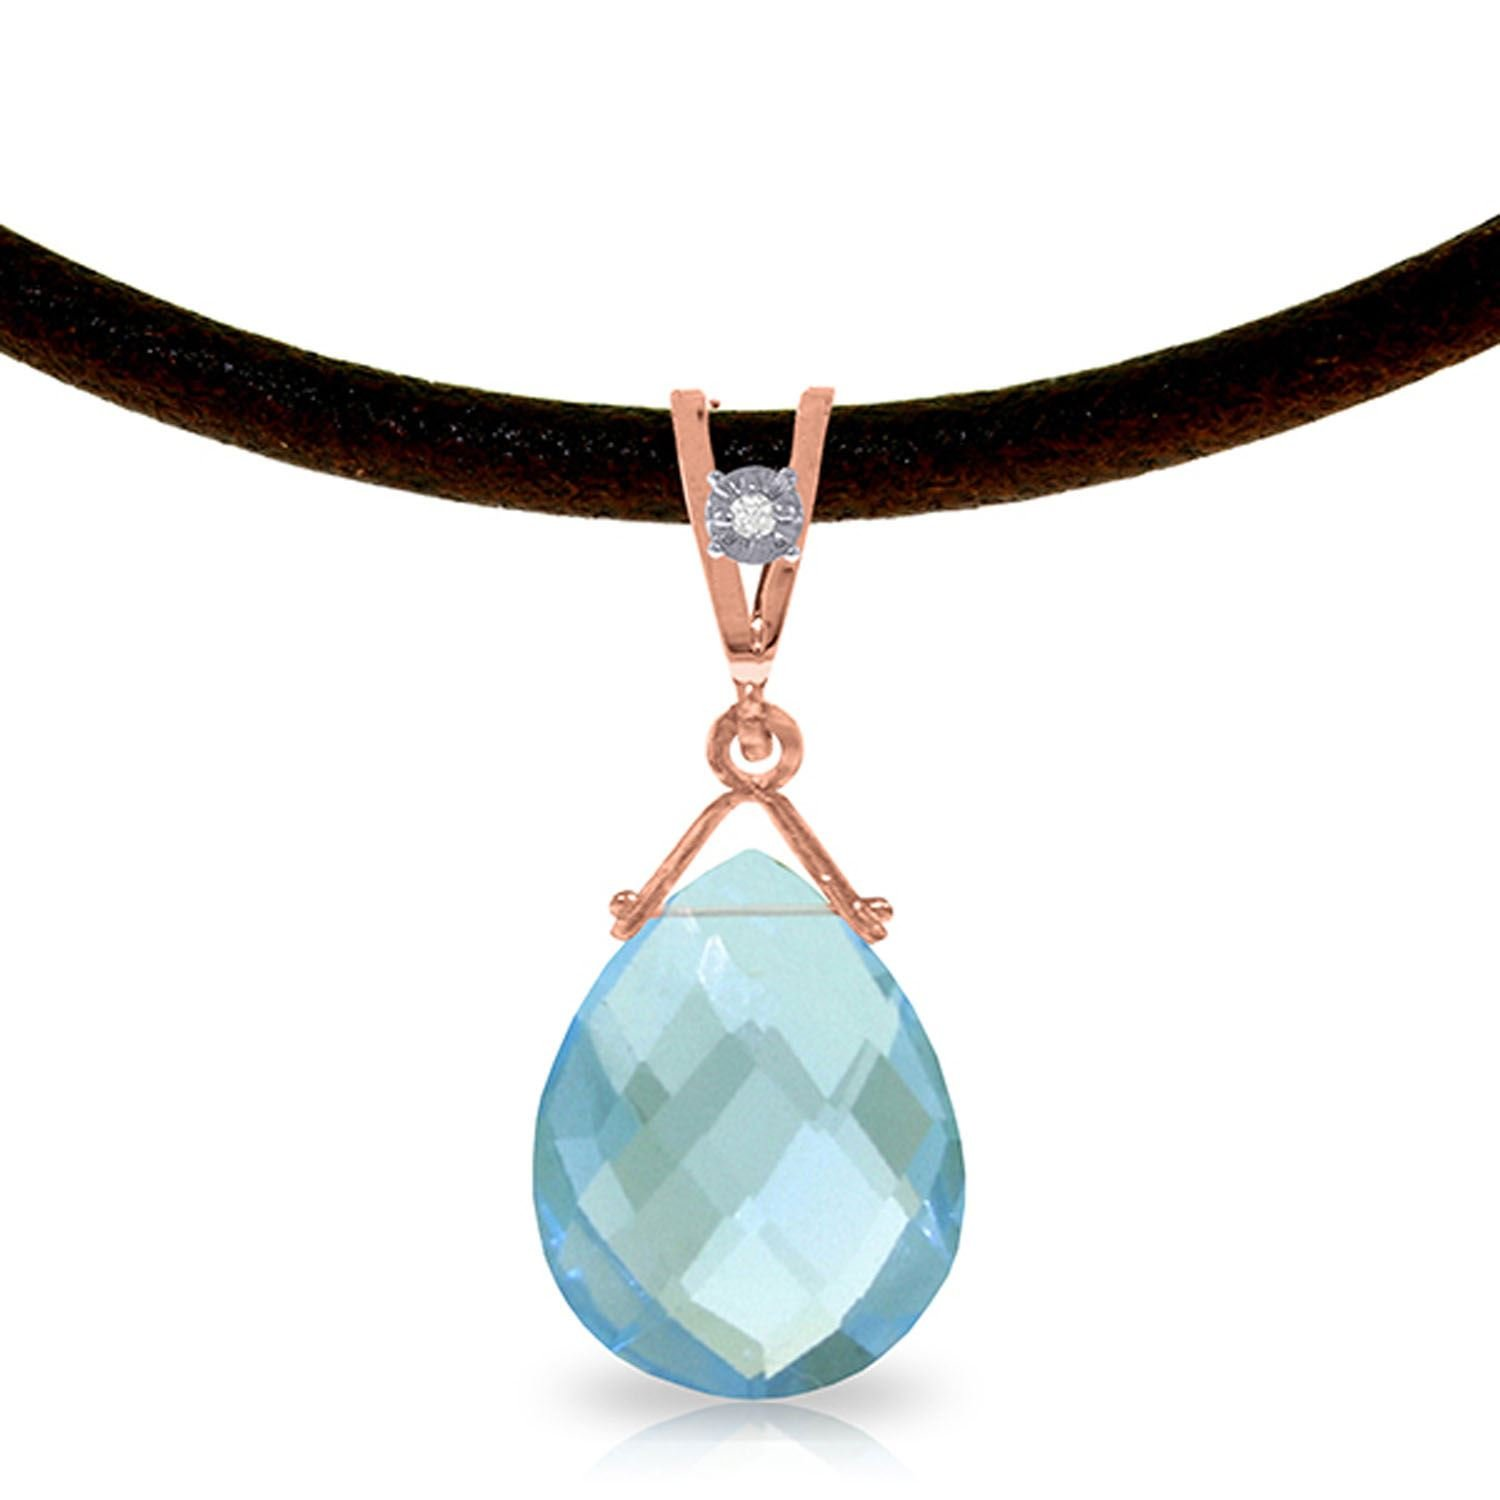 ALARRI 14K Solid Rose Gold /& Leather Necklace w// Diamond /& Blue Topaz with 24 Inch Chain Length